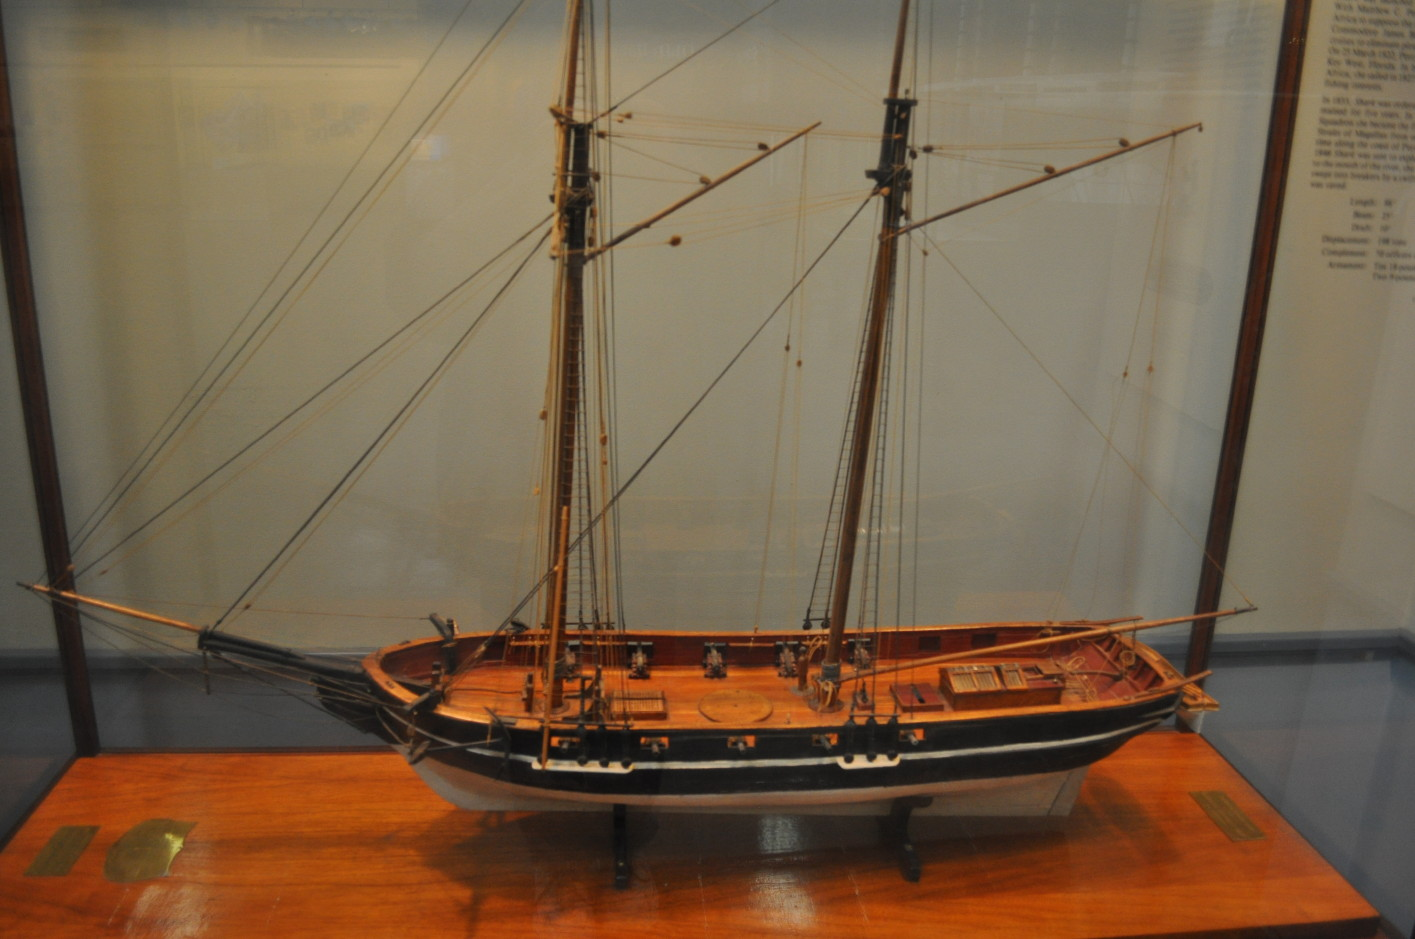 A model of the USS Shark, the first ship Dodd sailed on.